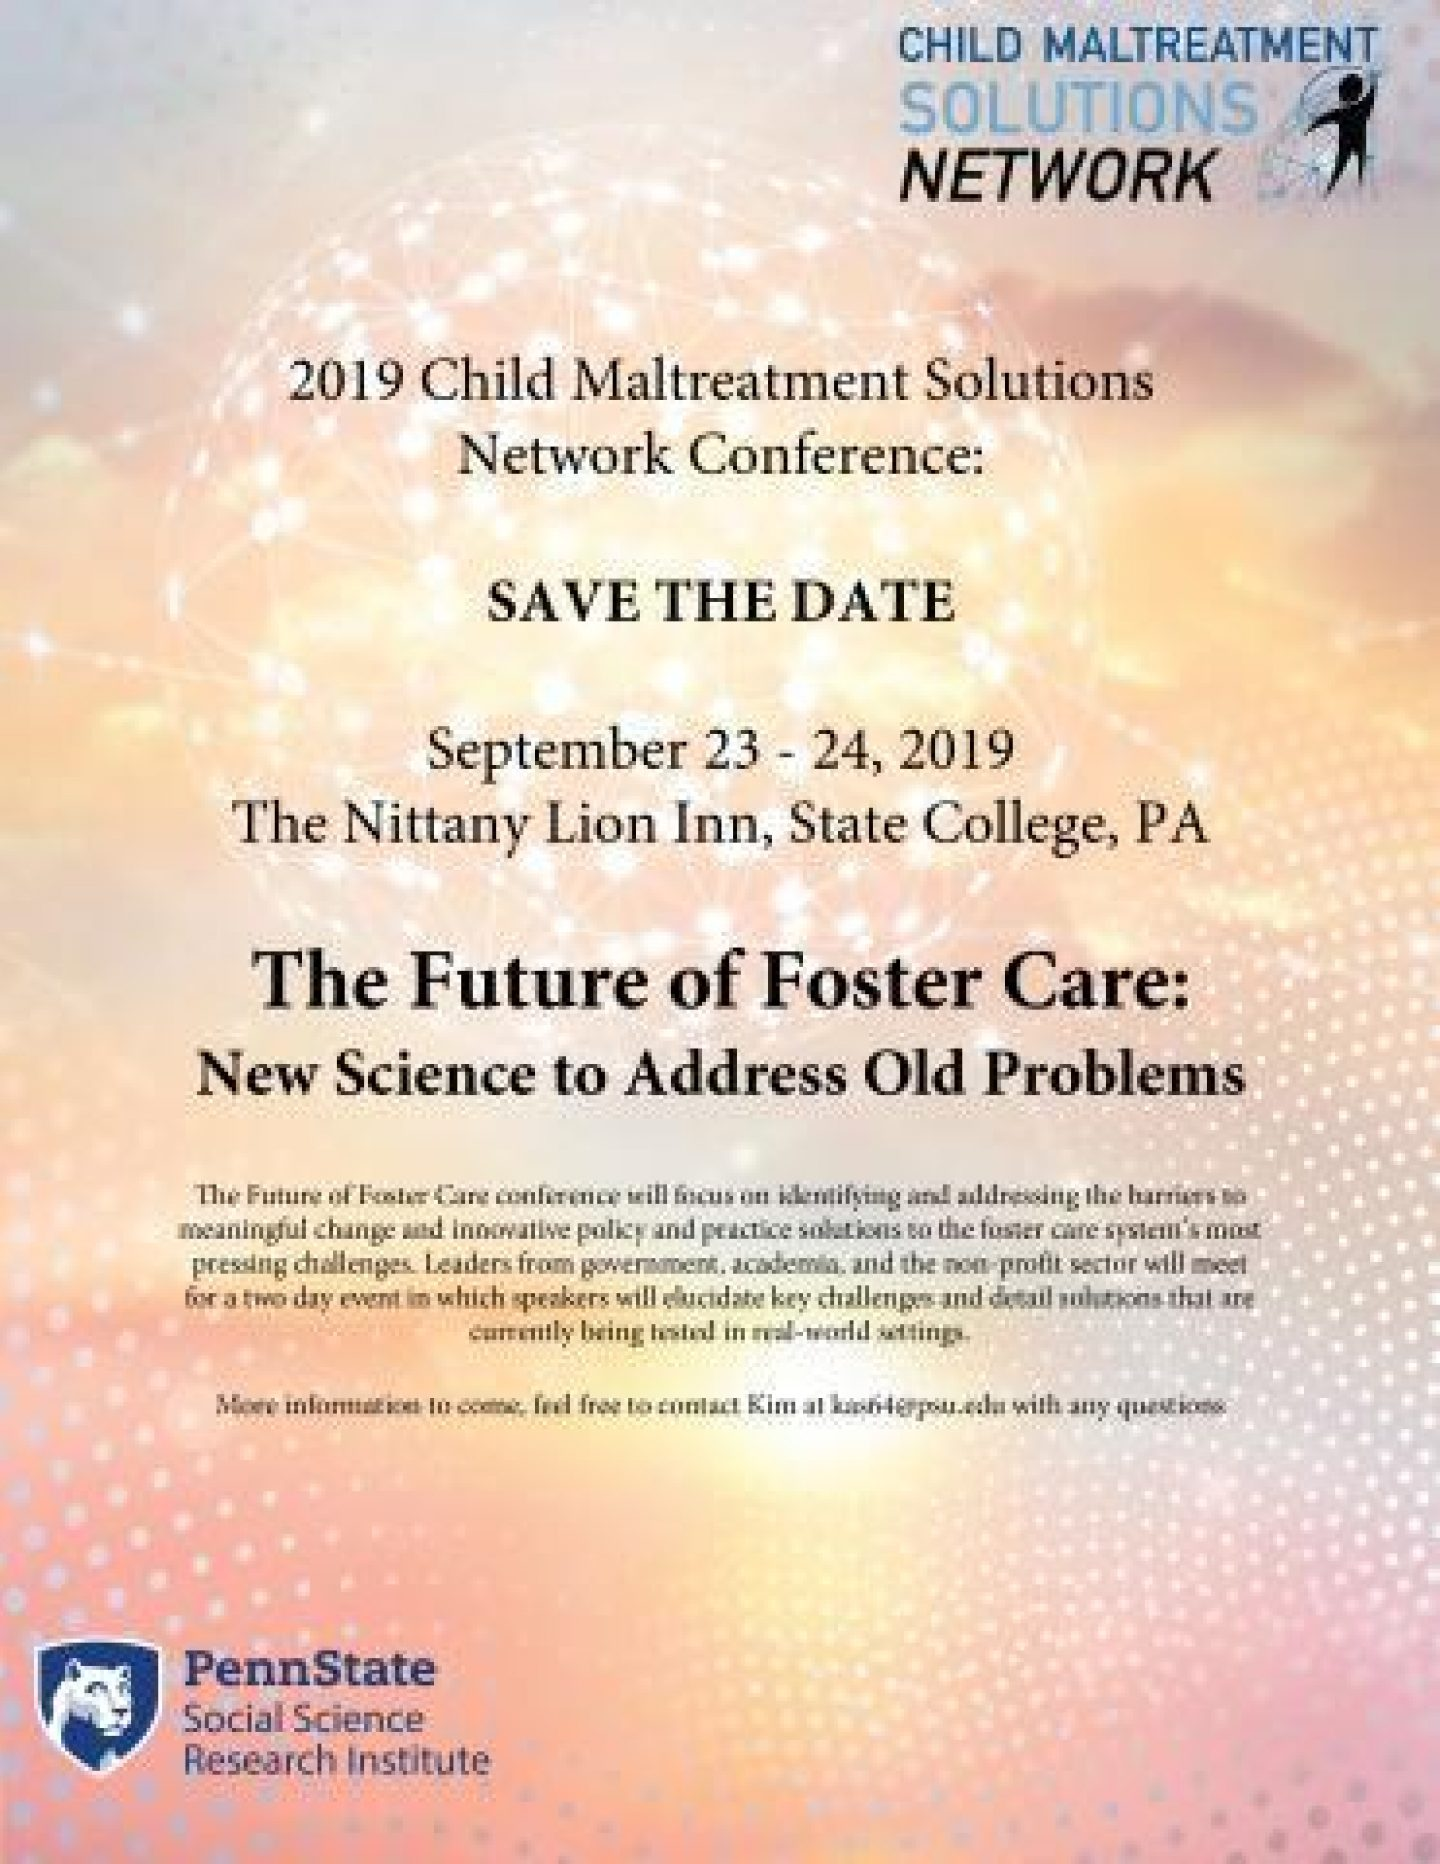 The future of foster care conference flyer